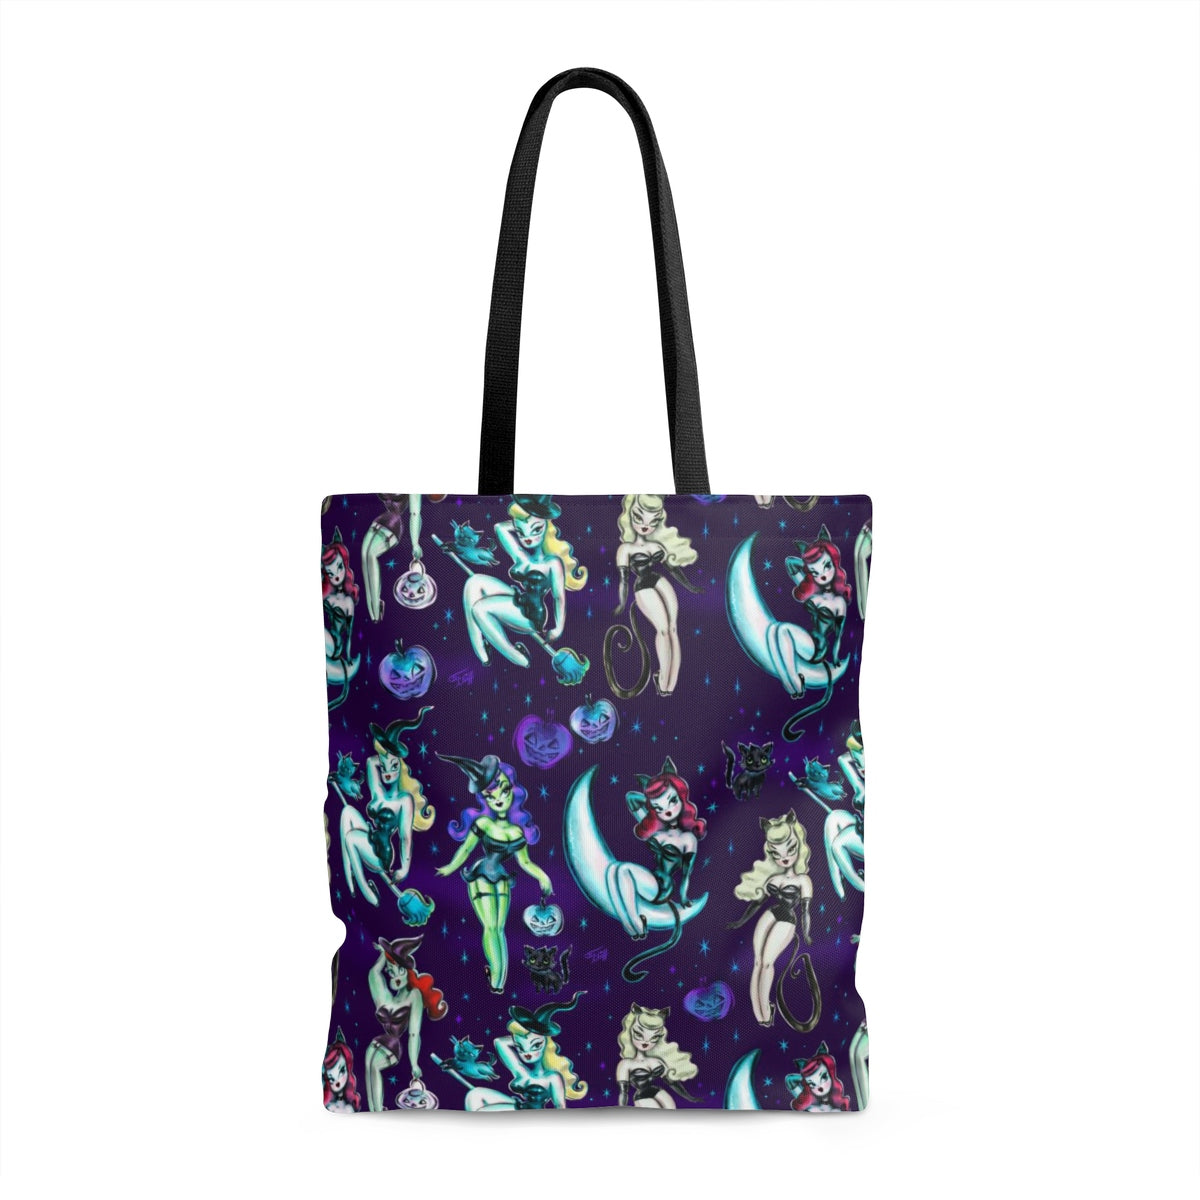 Witches and Black Cats • Tote Bag